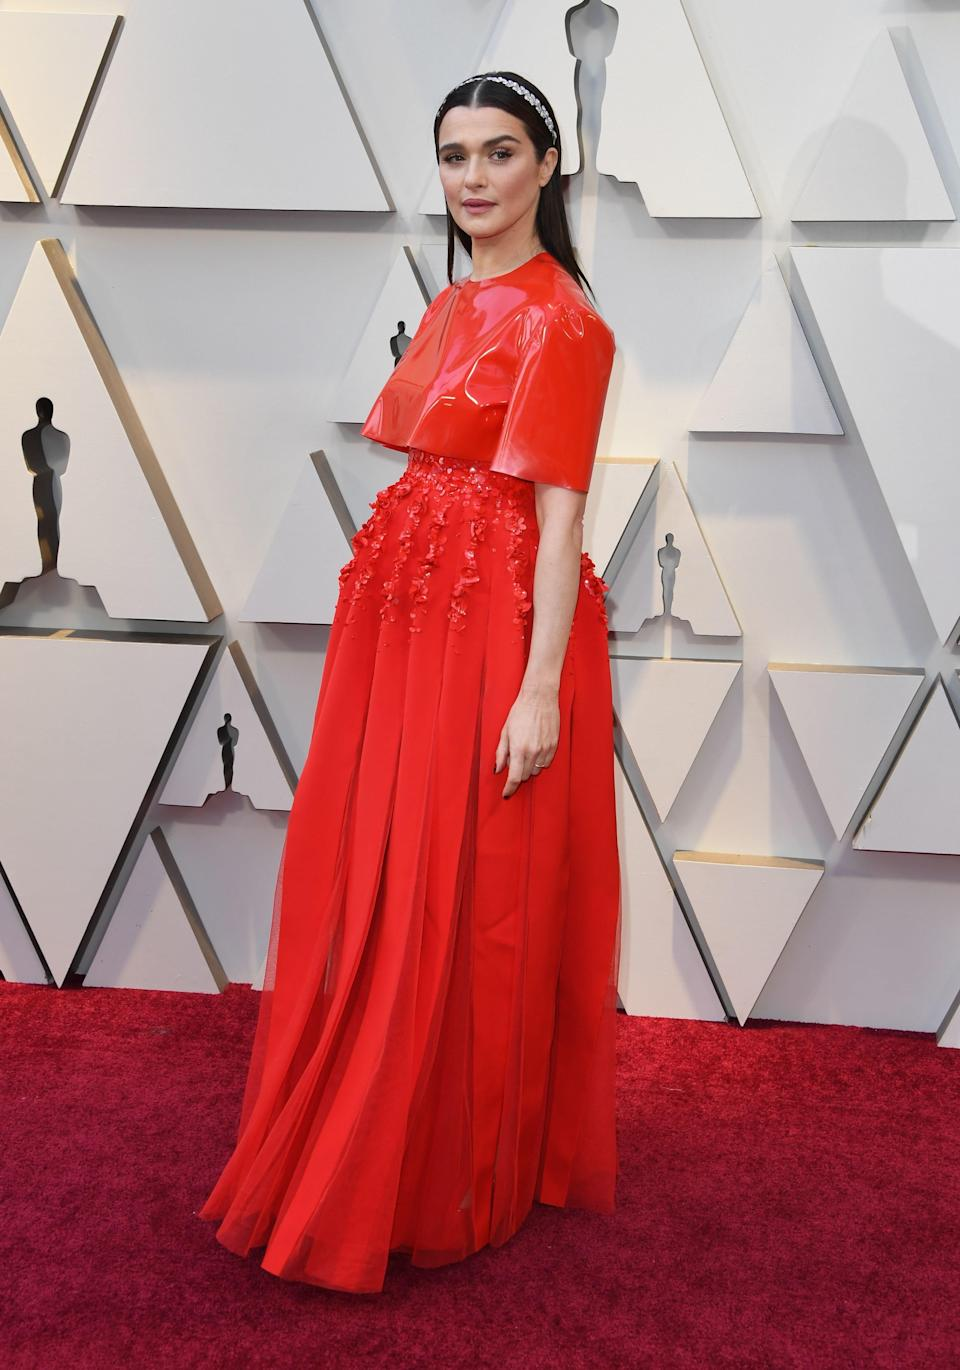 Rachel Weisz in Givenchy Couture and Cartier jewelry